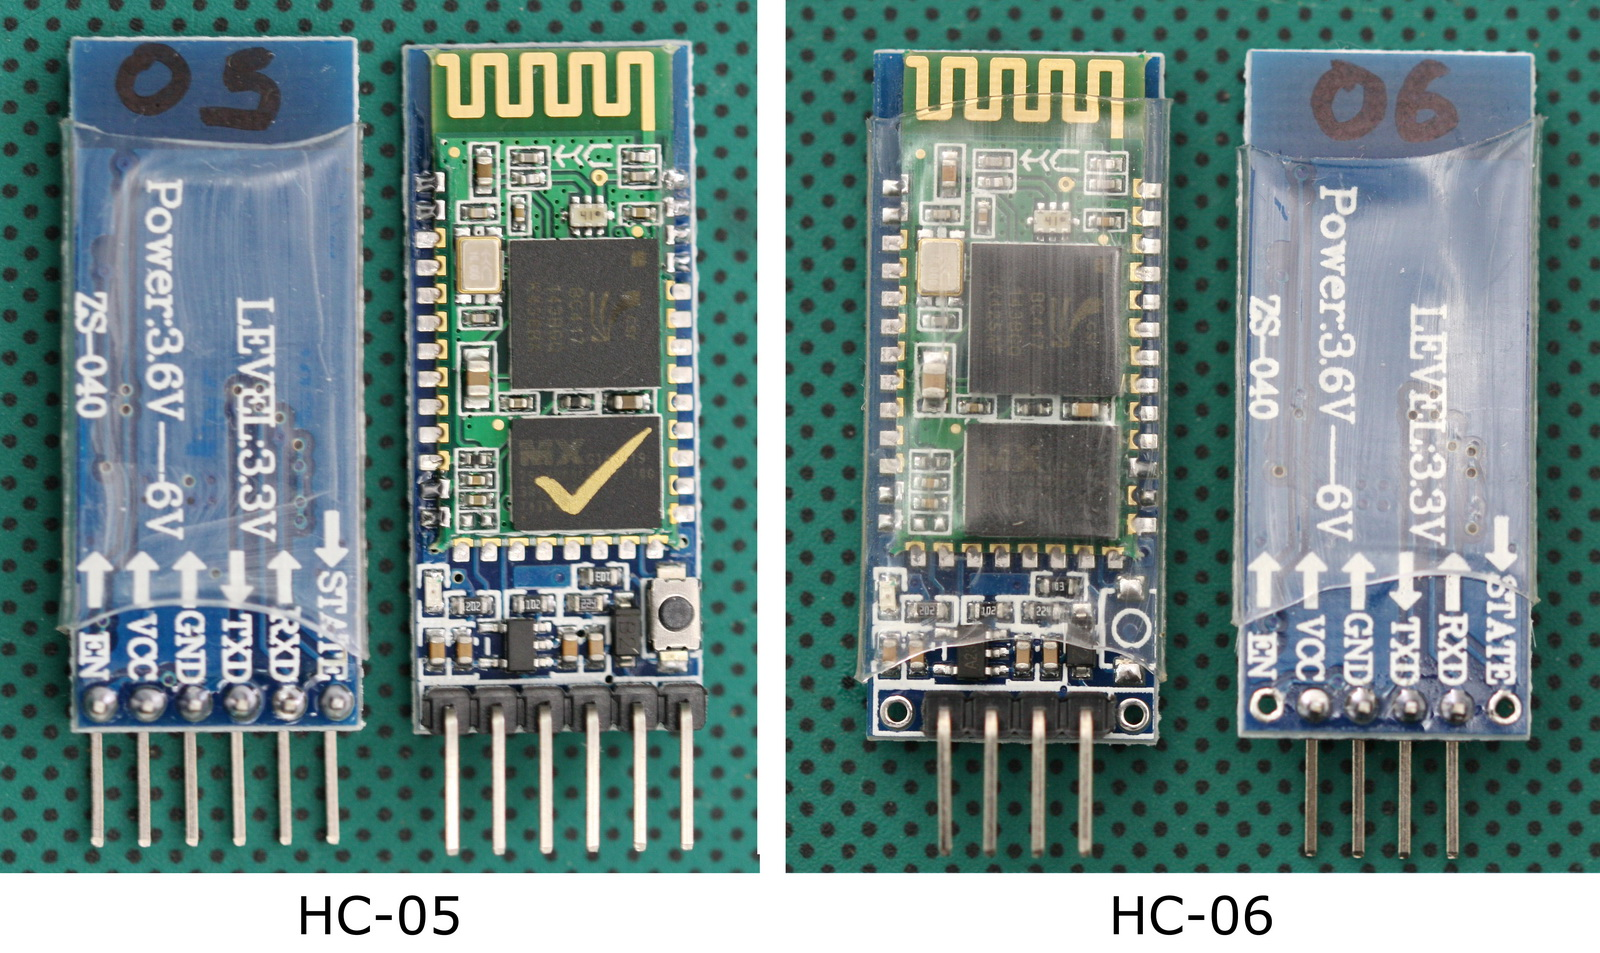 Bluetooth Modules Martyn Currey In Pdf And Eagle Formats The Schematic As Well Arduino Led Hc 05 06 Zs 040